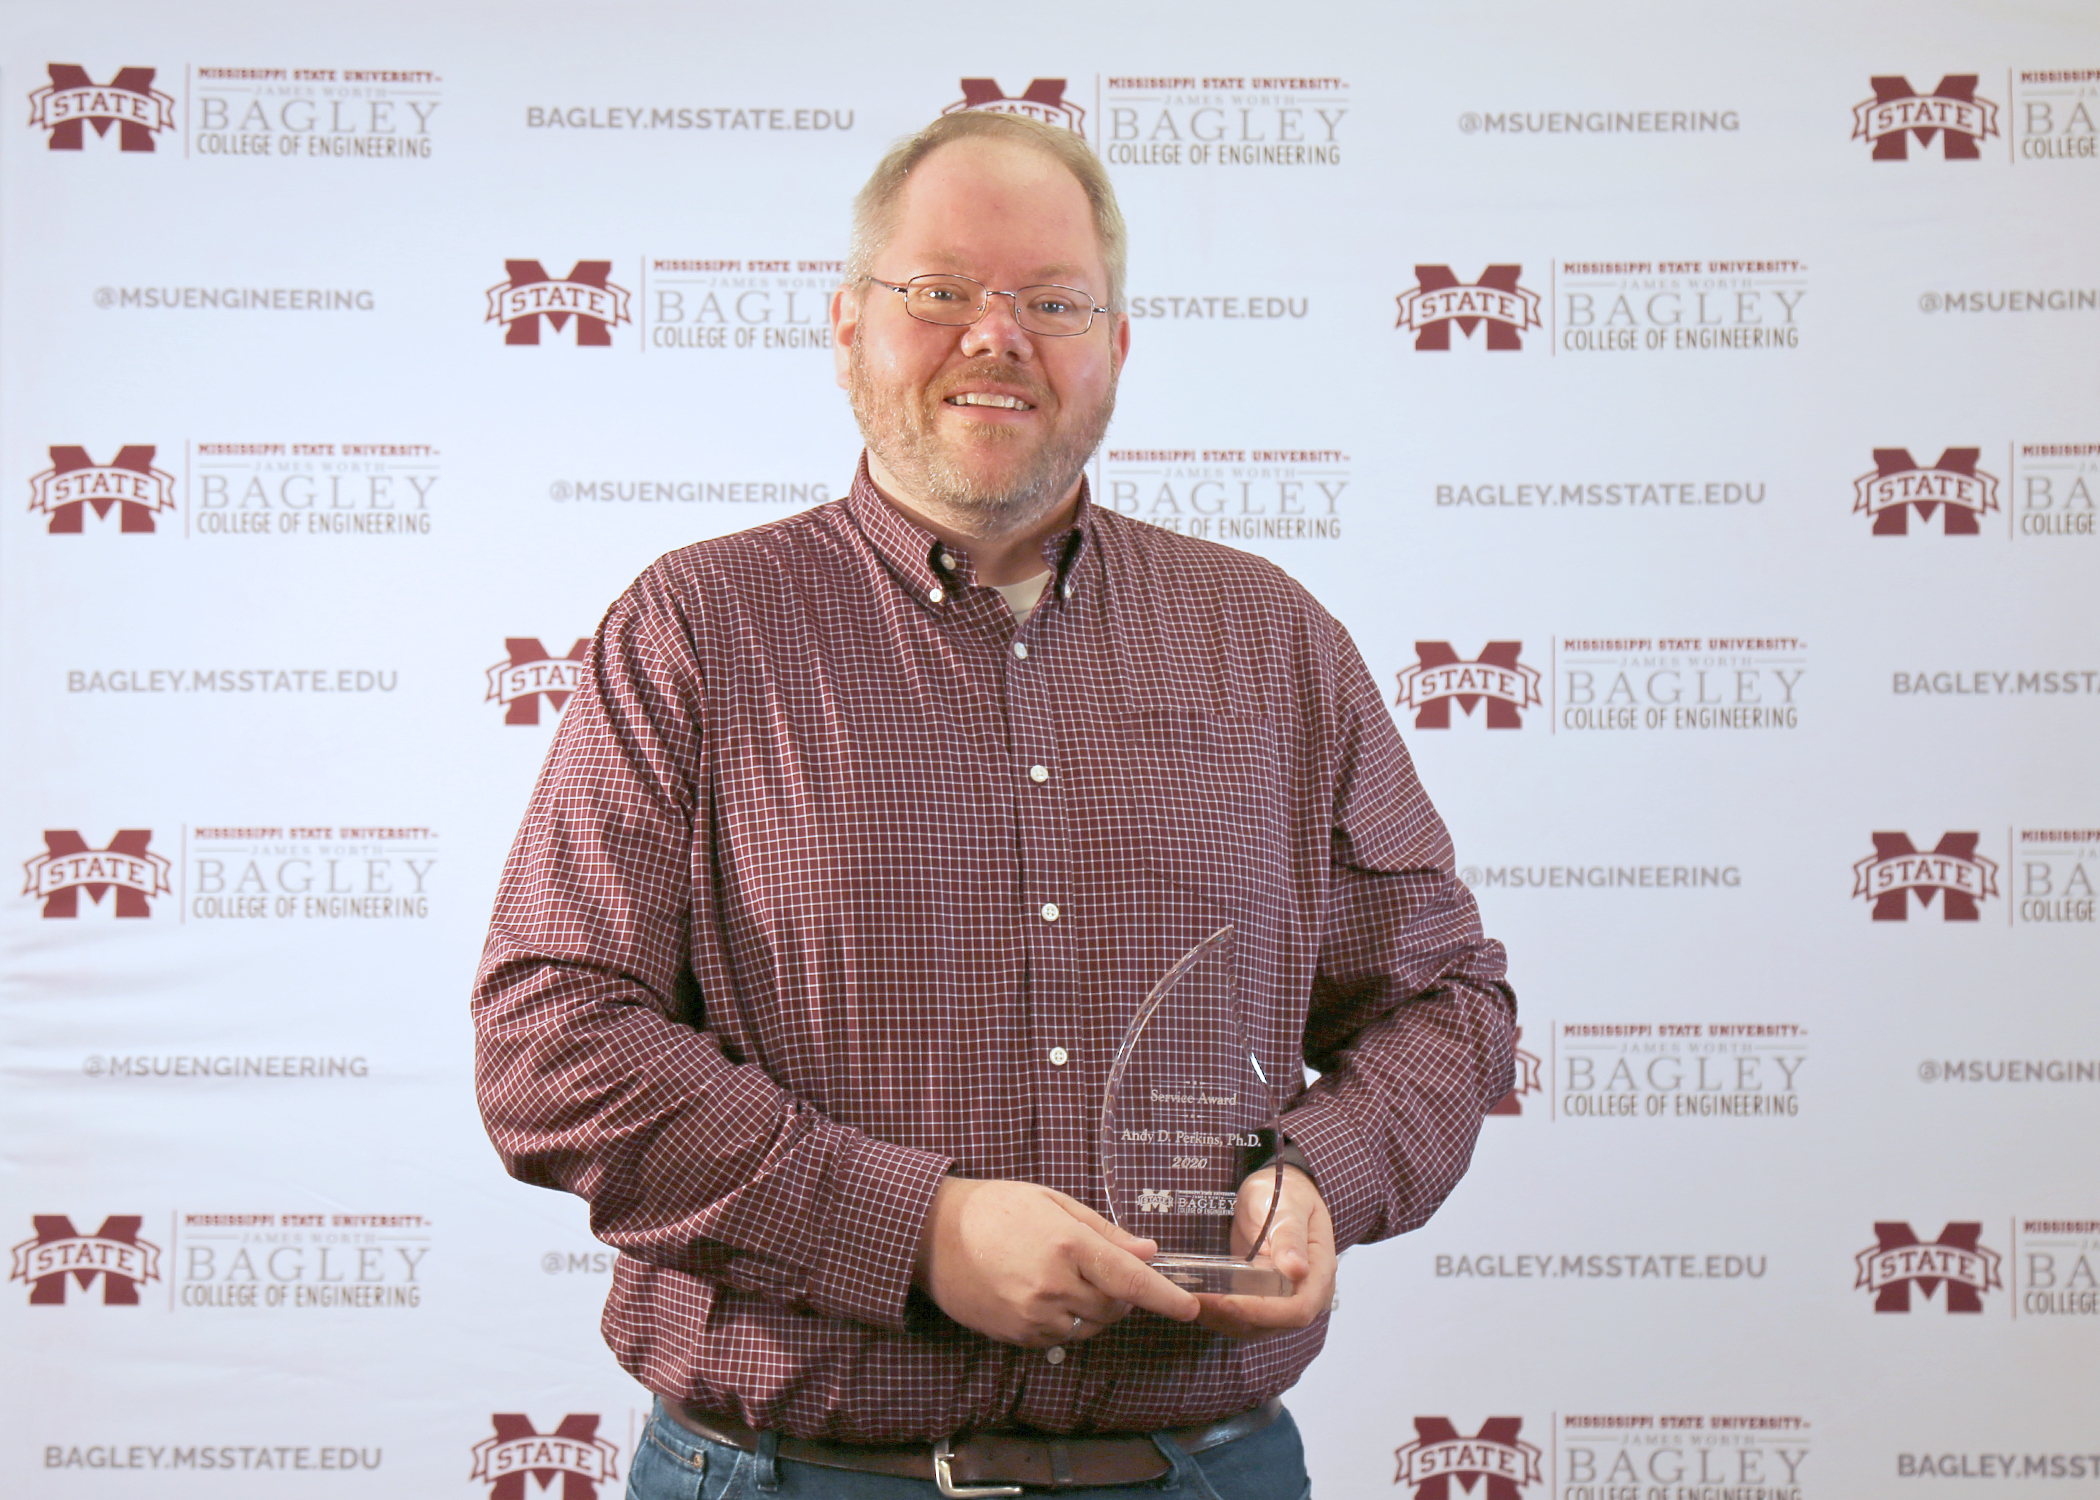 Service Award – Andy Perkins, Computer Science and Engineering